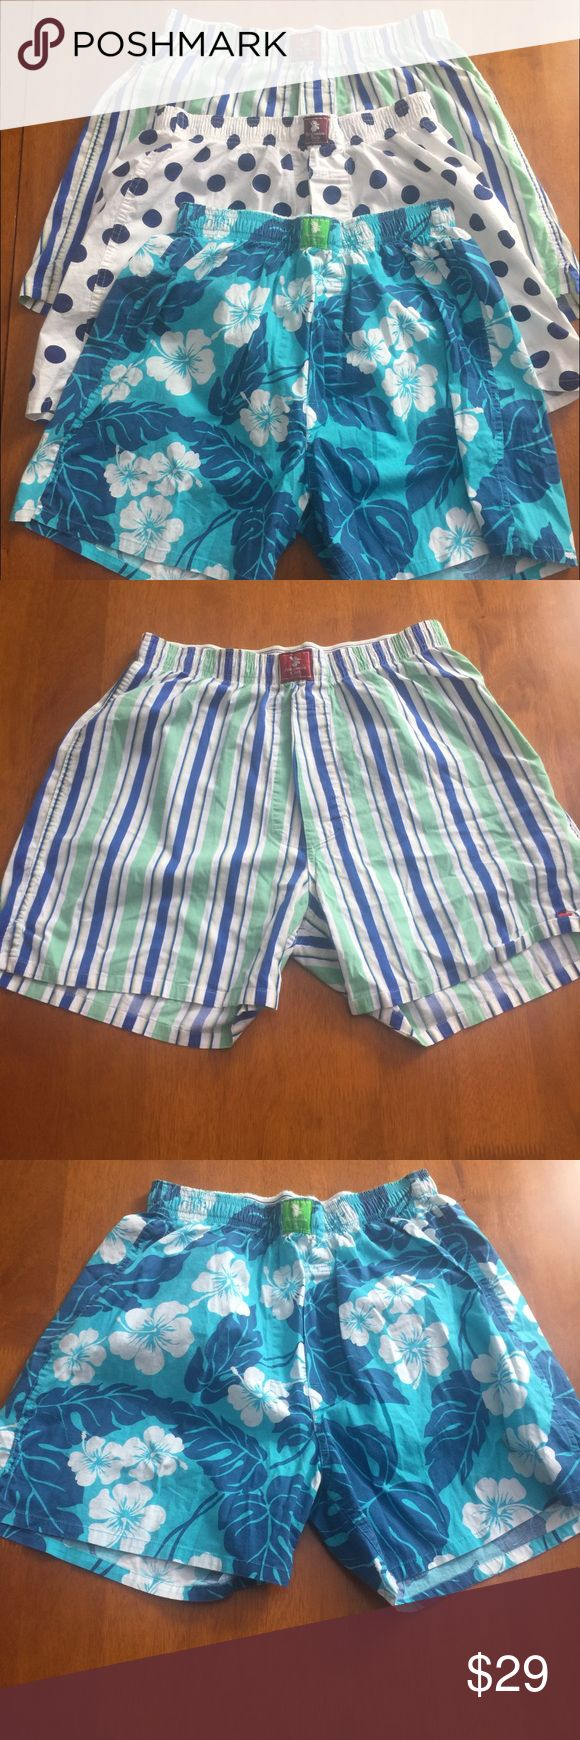 Abercrombie Men's Boxer Briefs Underwear Lot of 3 Abercrombie men's boxer brief.  Size is medium.  Washed but not worn.  Too small.  Bundle to save on shipping. Abercrombie & Fitch Underwear & Socks Boxers